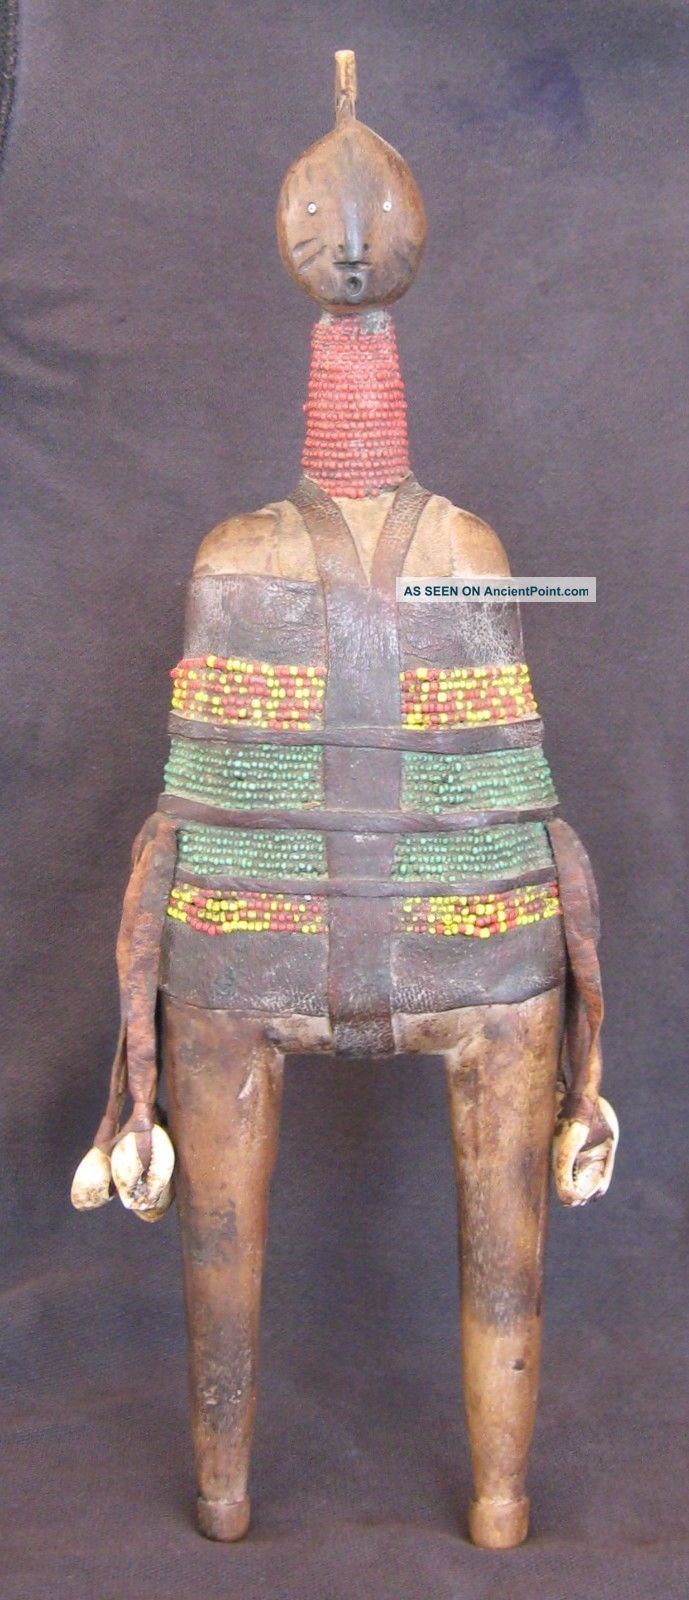 Vintage African Fertility Doll Beaded W/leather Shells Namchi Cameroon 1950s Sculptures & Statues photo